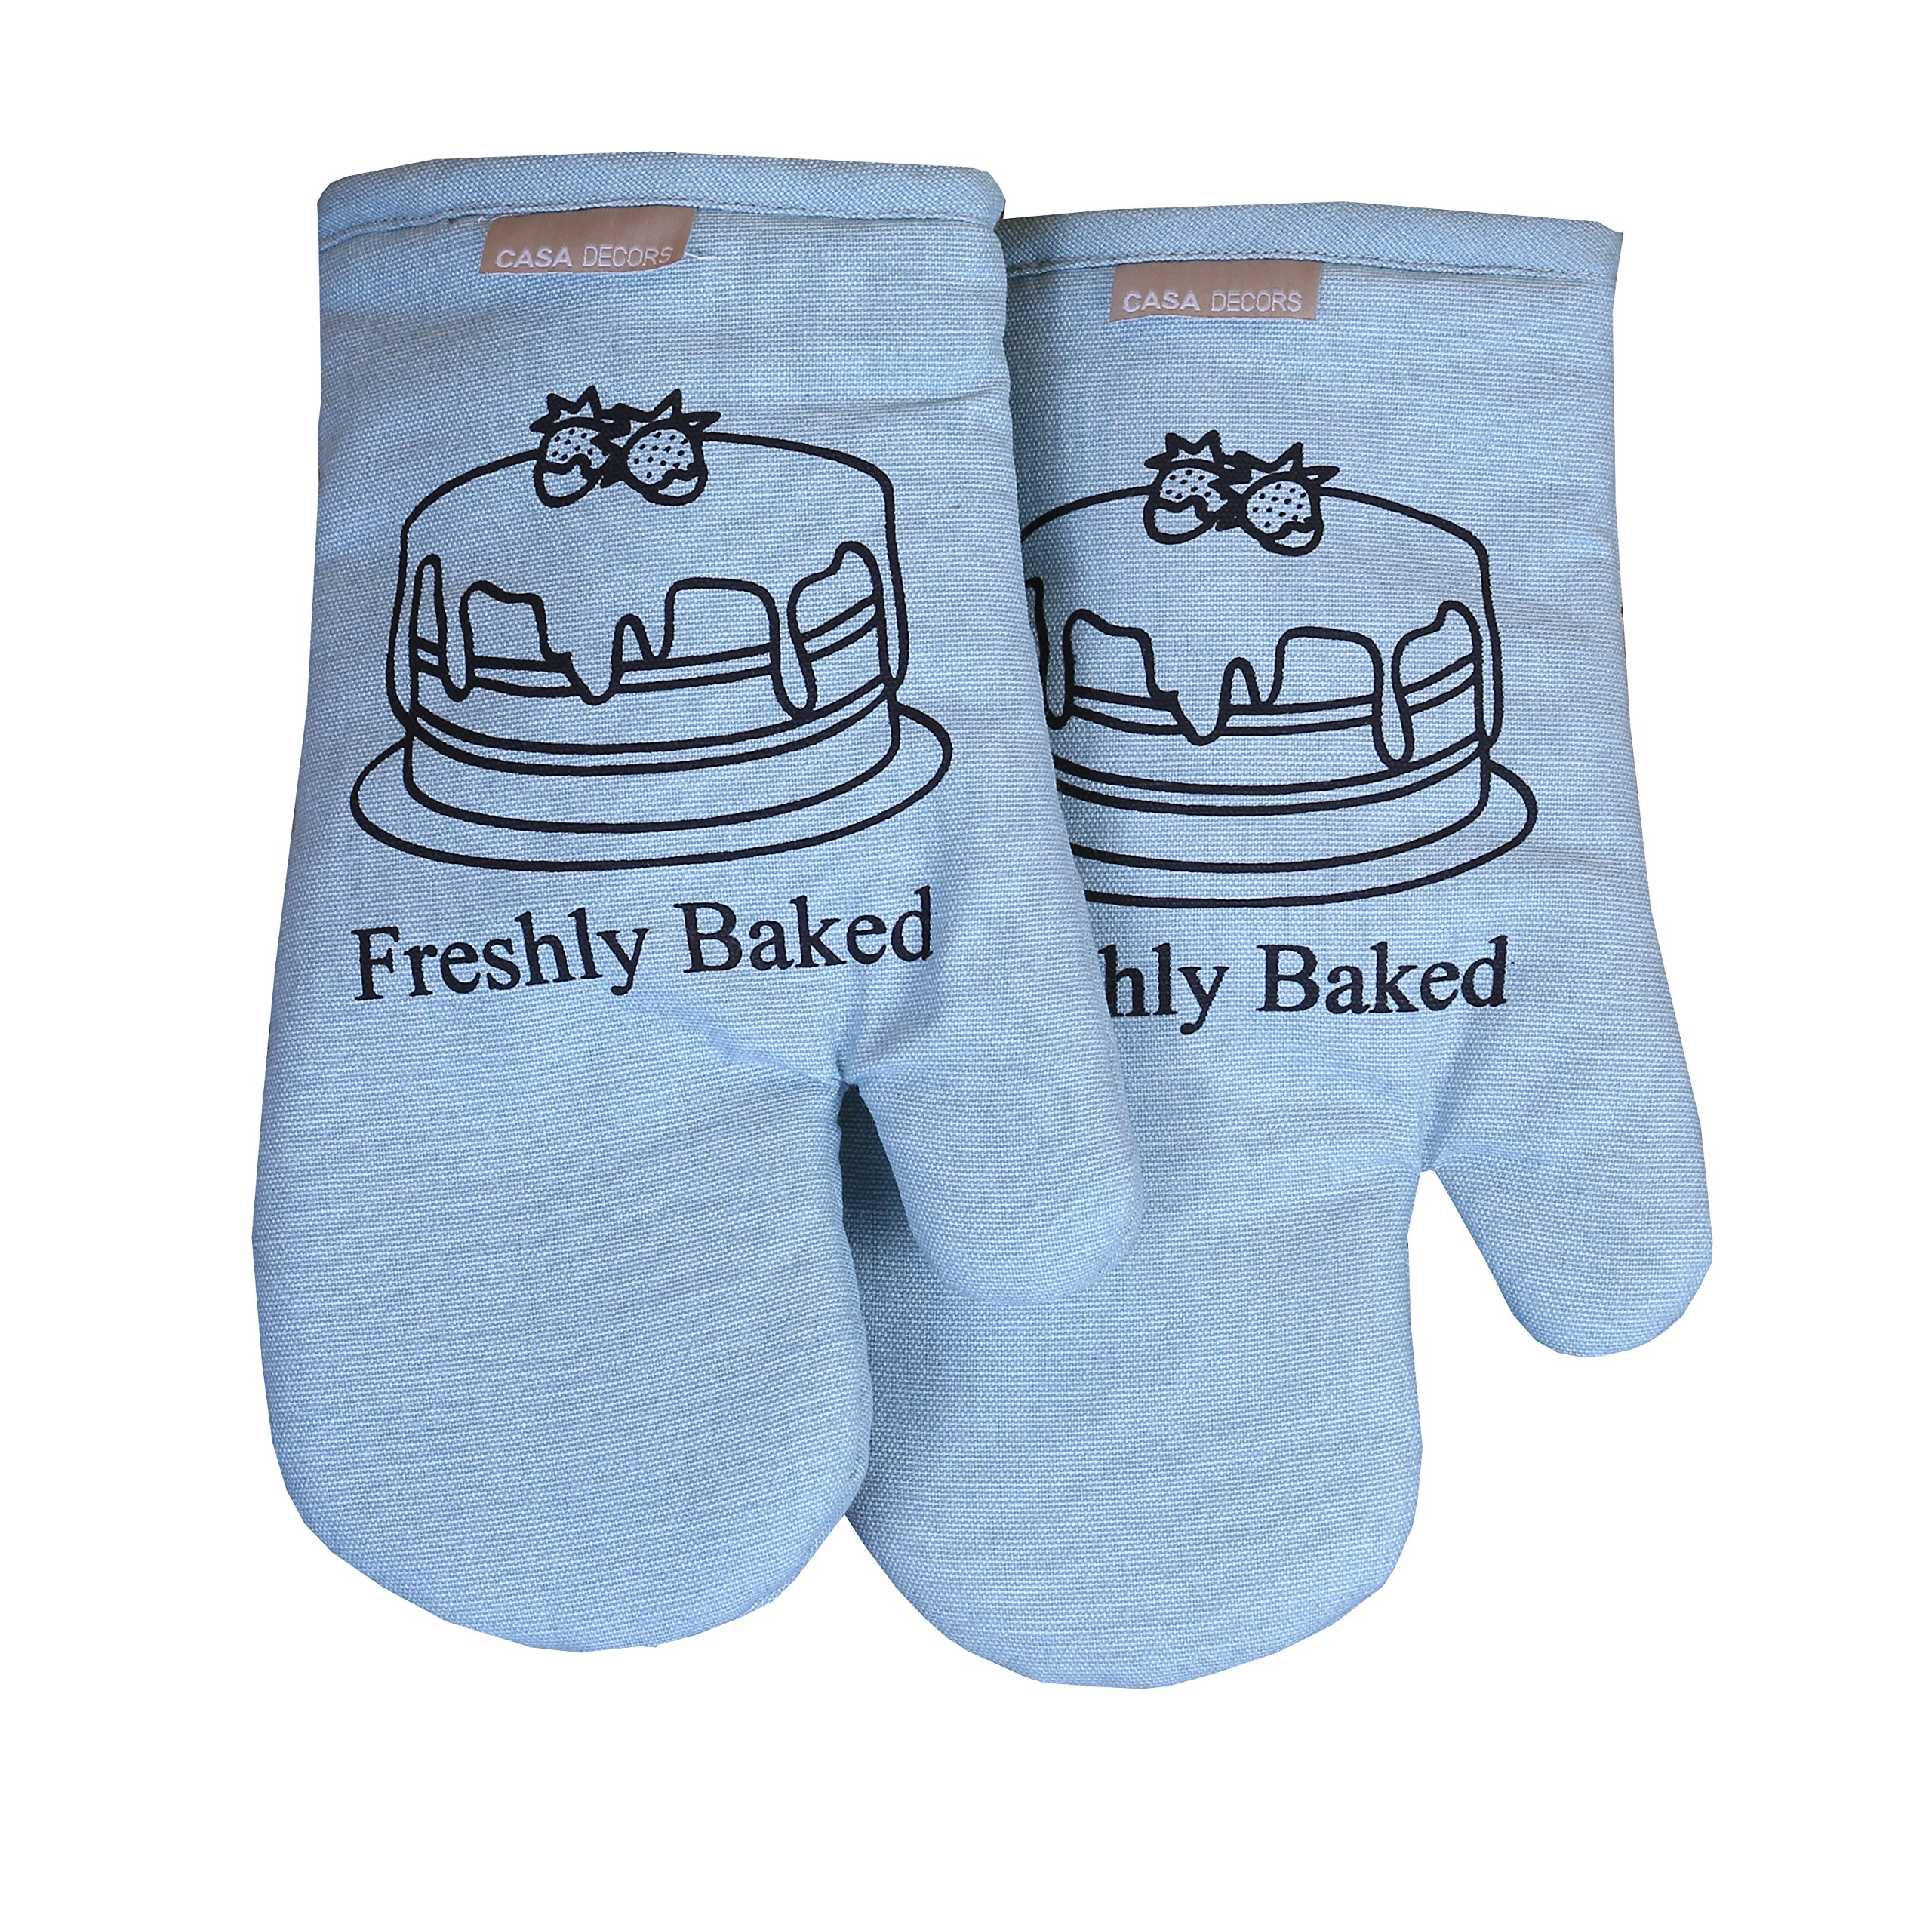 Oven Mitts, Baking Fun Design, Oven Mitts Heat Resistant, Made of 100% Cotton, Eco-Friendly & Safe, Set of 2, Oven Mitt size 7 x 13 Inches, Machine Washable, Kitchen Oven Mitts By CASA DECORS